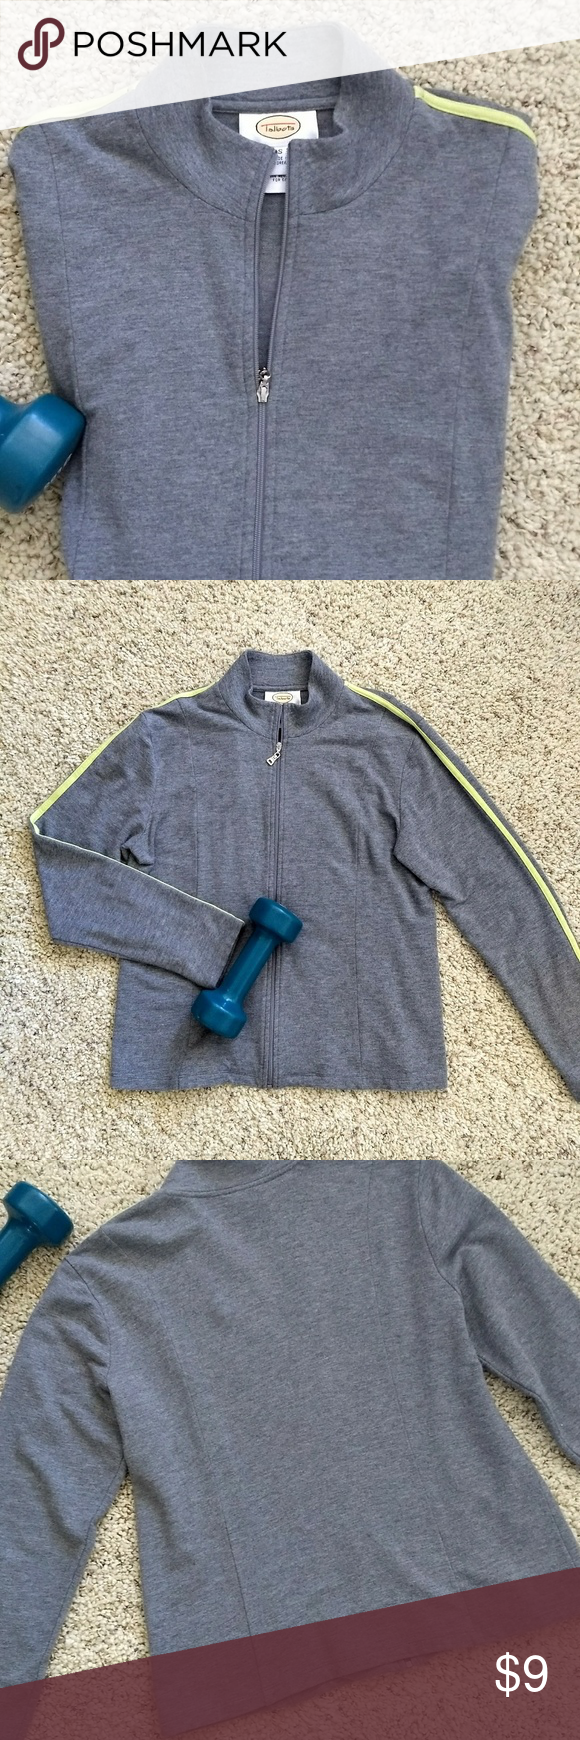 """Lightweight Athletic Jacket Size S Lightweight & Soft,  Grey Athletic Style Jacket with yellow stripe detail along shoulder and sleeves Zipper closure 60% Rayon/31% Cotton/3% Cotton Machine Washable Great pre-owned condition Length from shoulder to hem: approx 23"""" Sleeve length: approx 22"""" Talbots Jackets & Coats"""